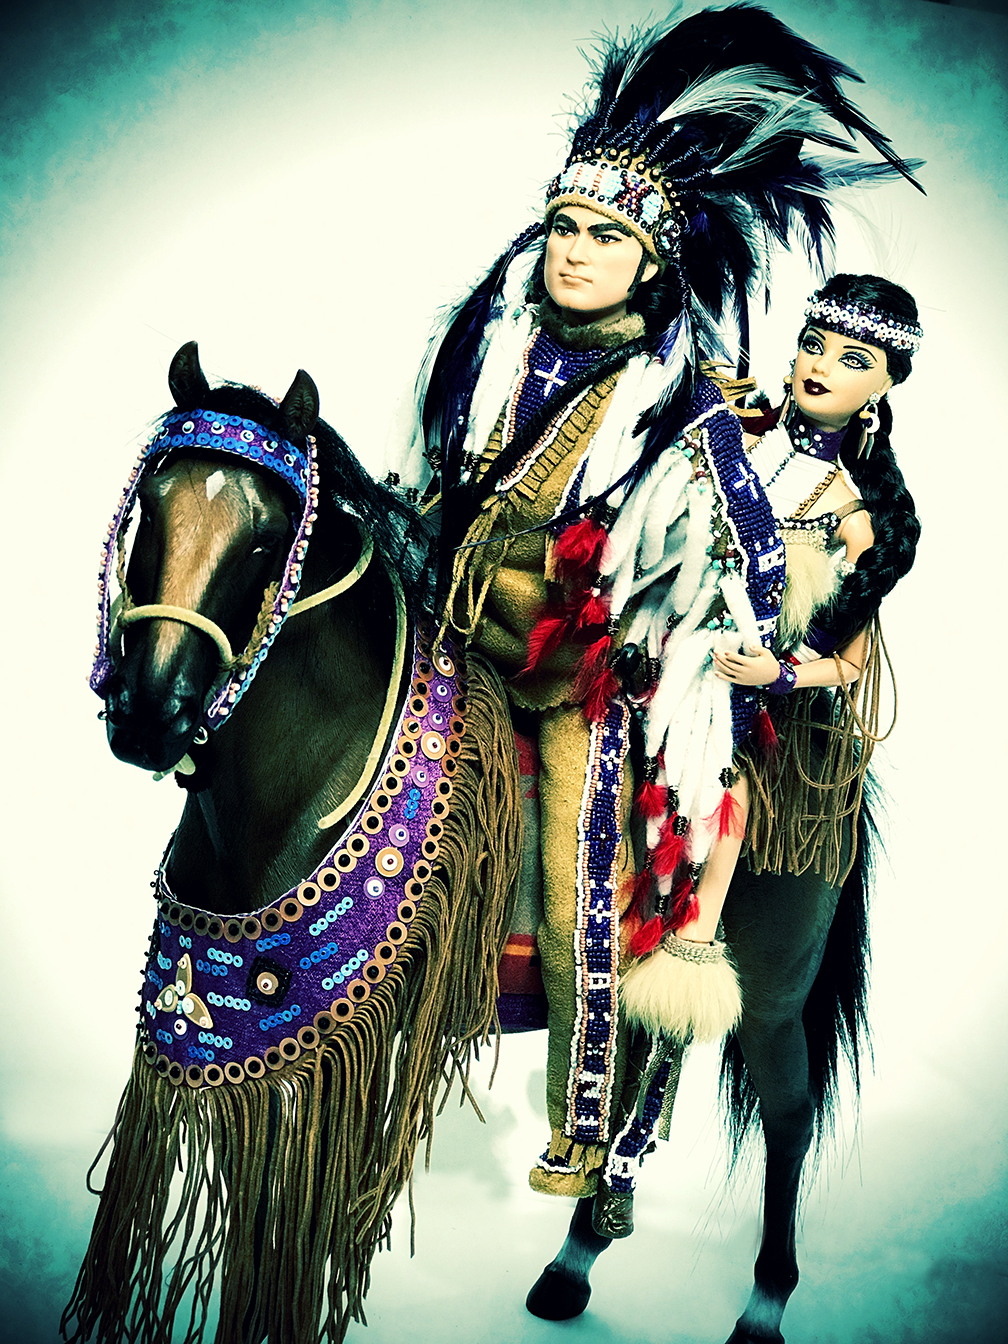 NativeAmericanDuo